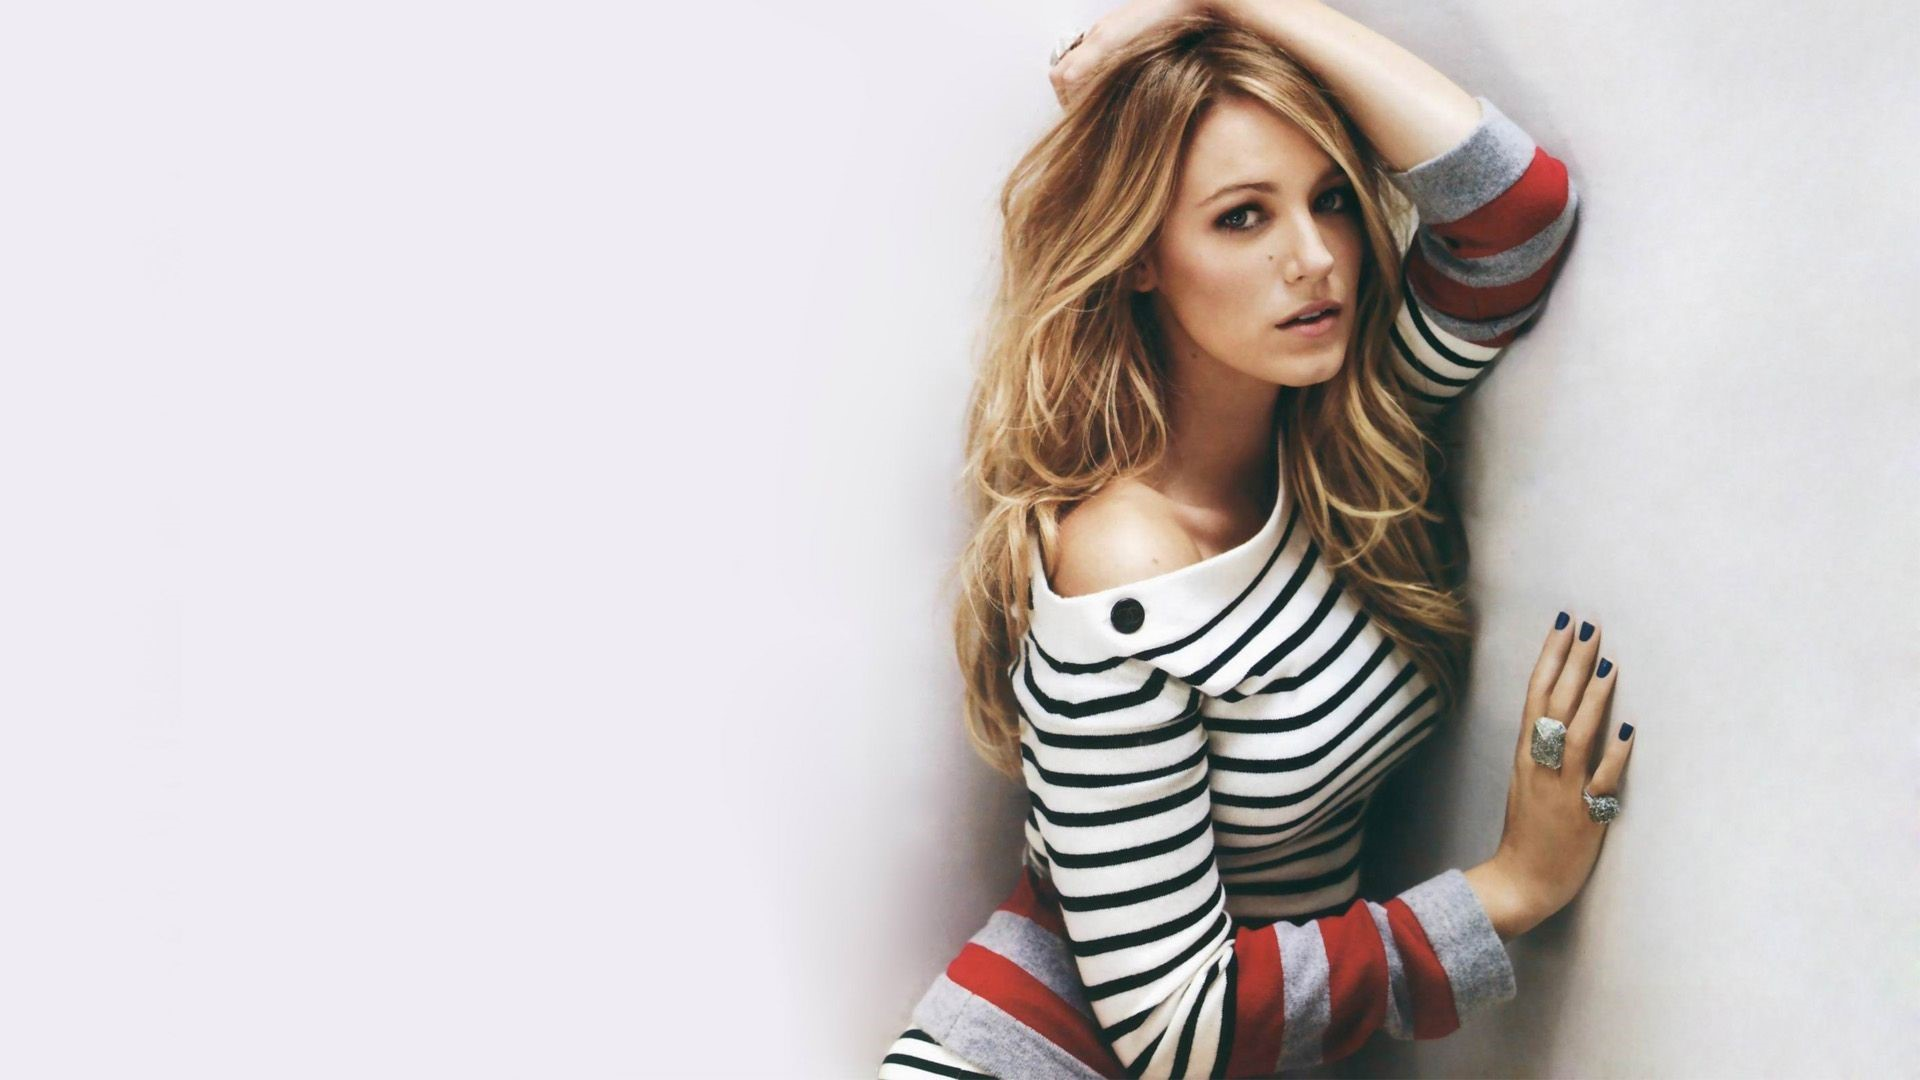 Wallpaper Actress Blake Lively